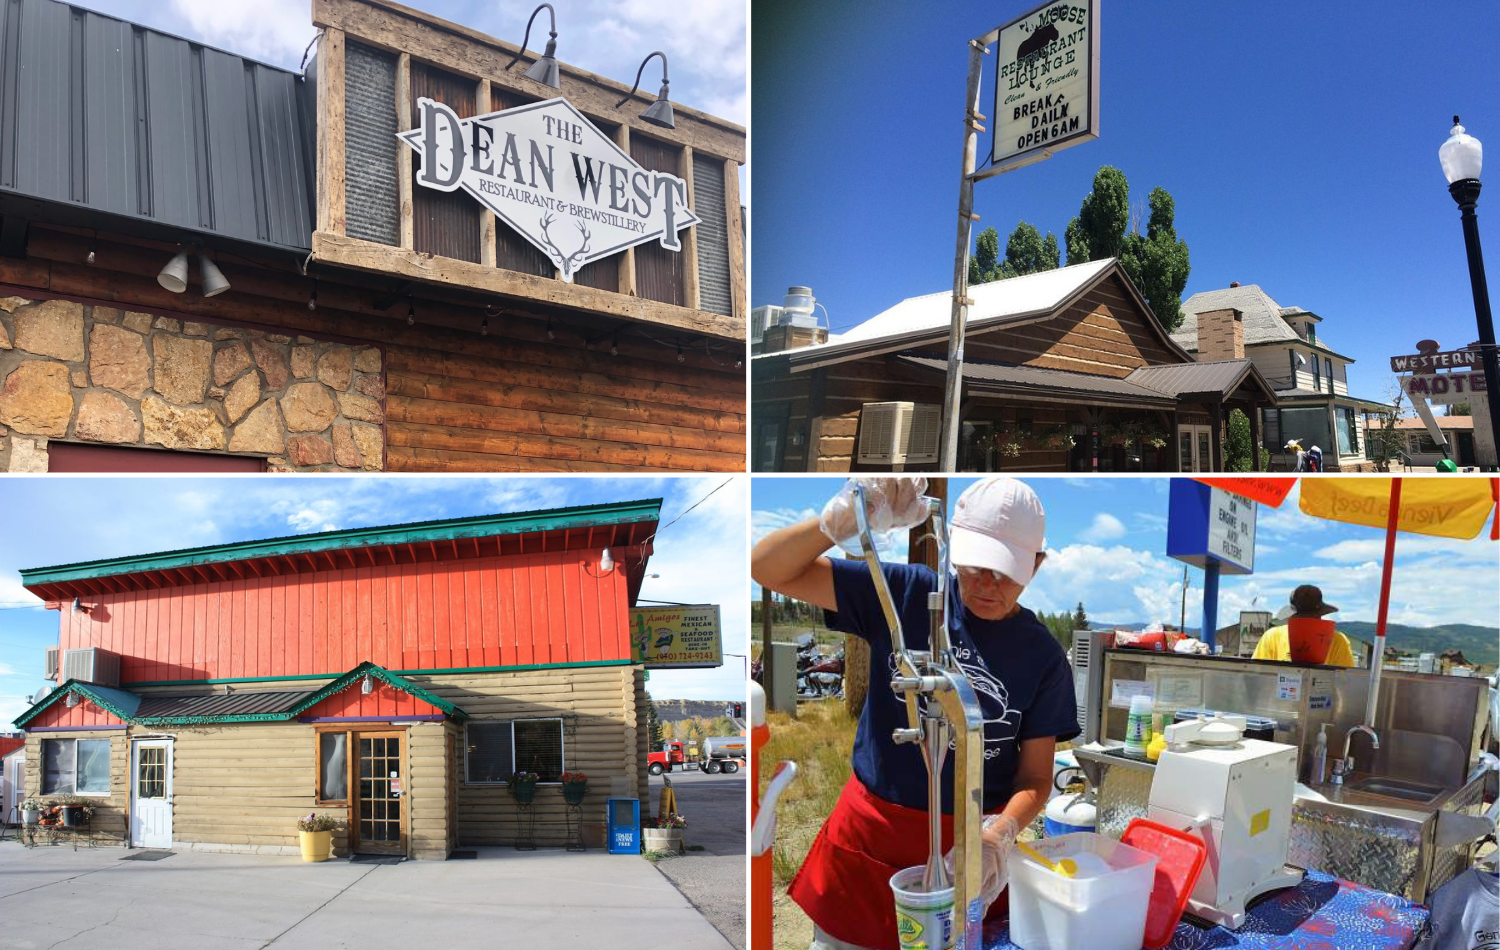 4 block image showing the Dean West, Moose Cafe, Los Amigos, and Genie's Weenies are some of the best restaurants and places to eat in Kremmling, CO - Grand County